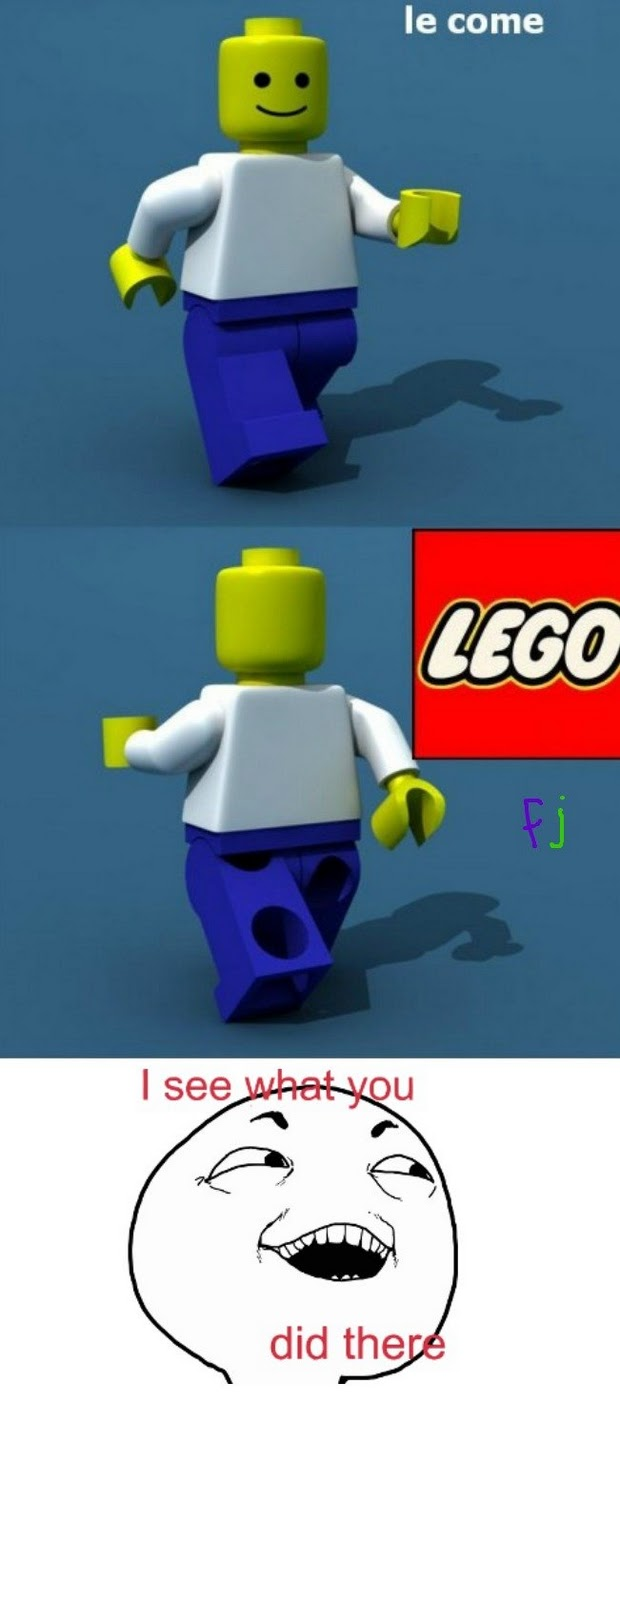 More funny | Meme | Rage Comics: Le come - Lego